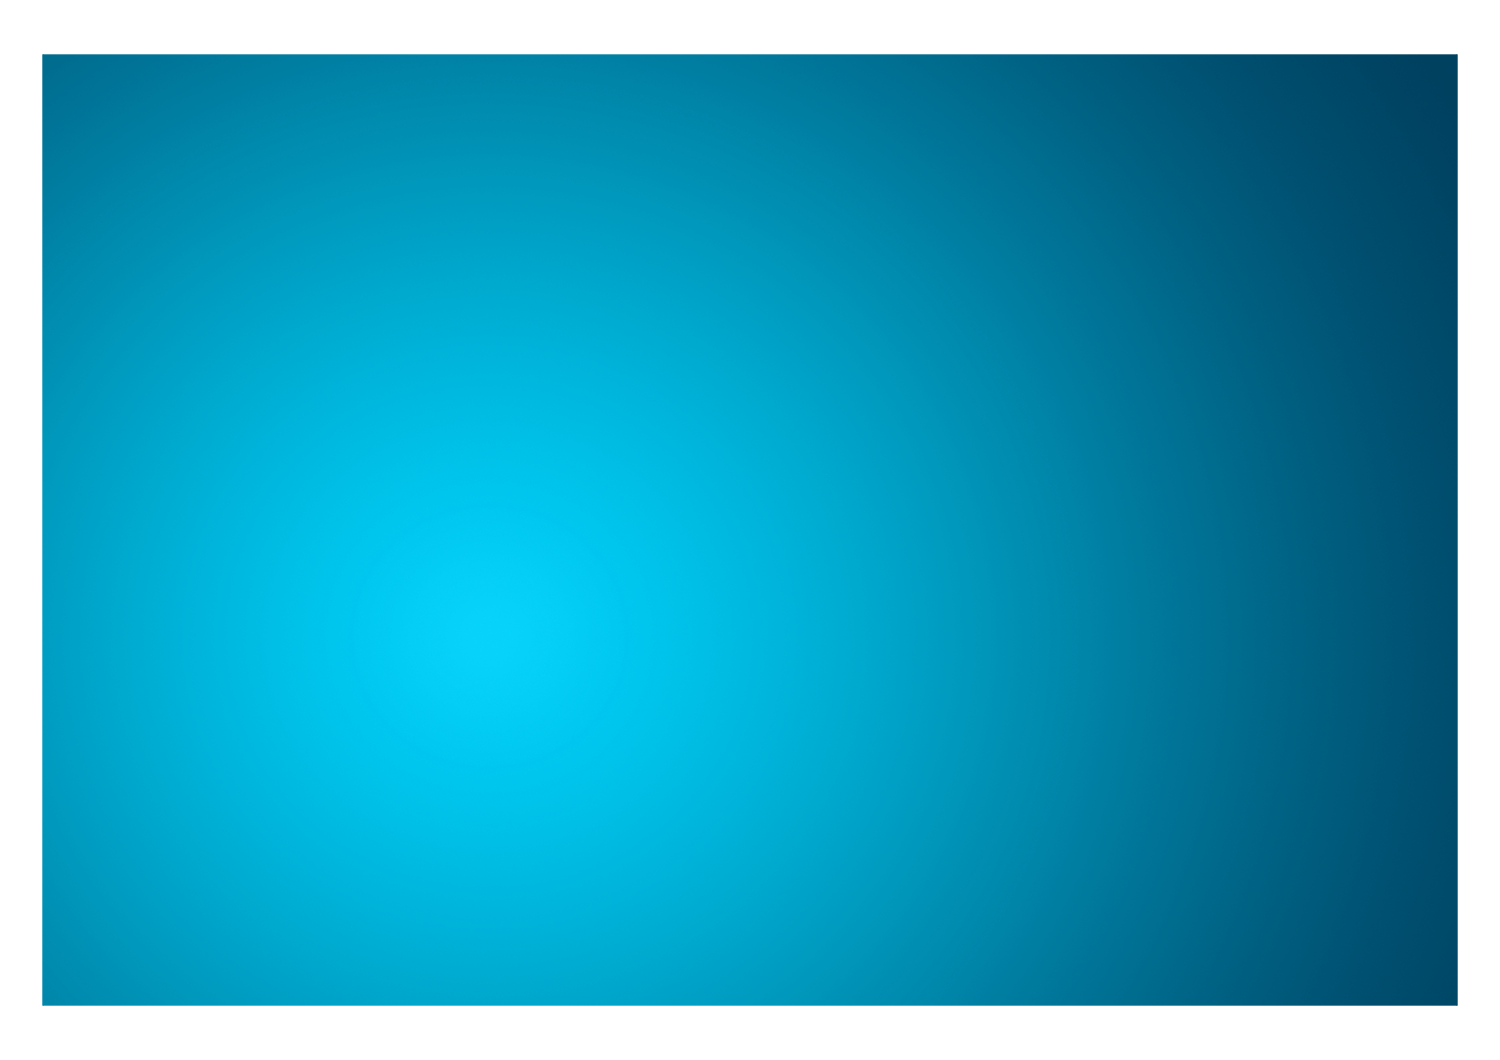 Light blue background png. Download transprent free picture